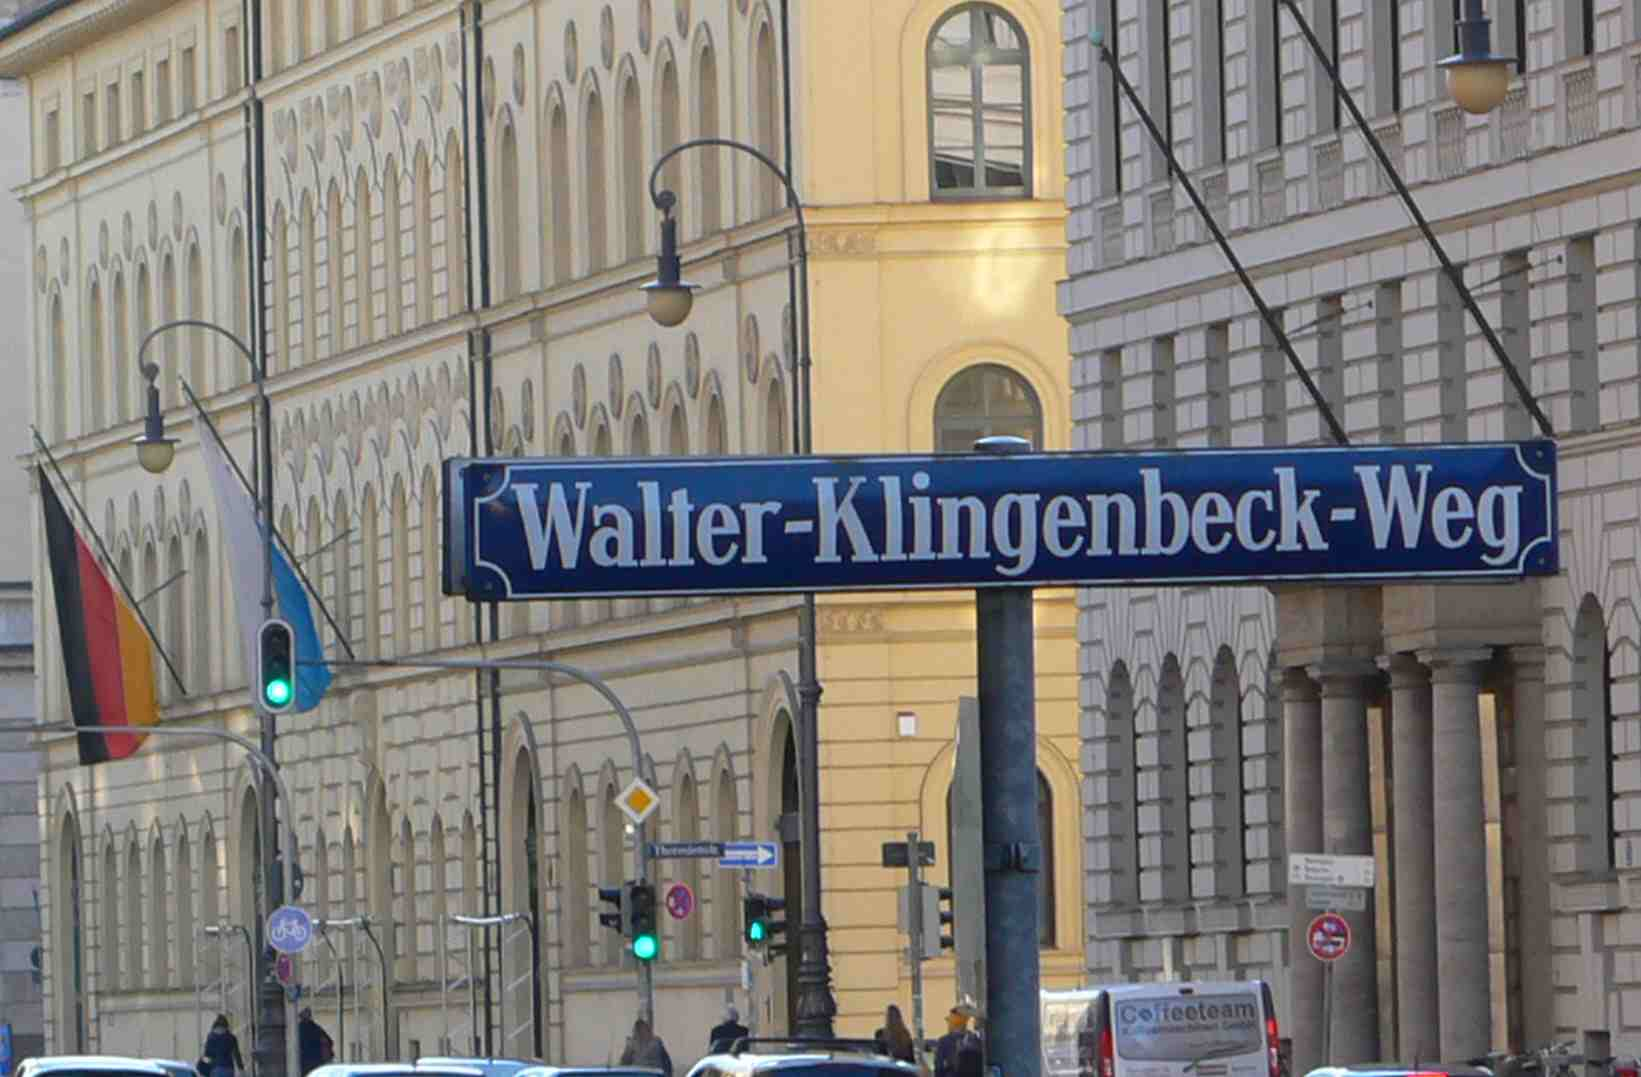 a Munich alley named after Walter Klingenbeck who served in German Resistance against the Nazis